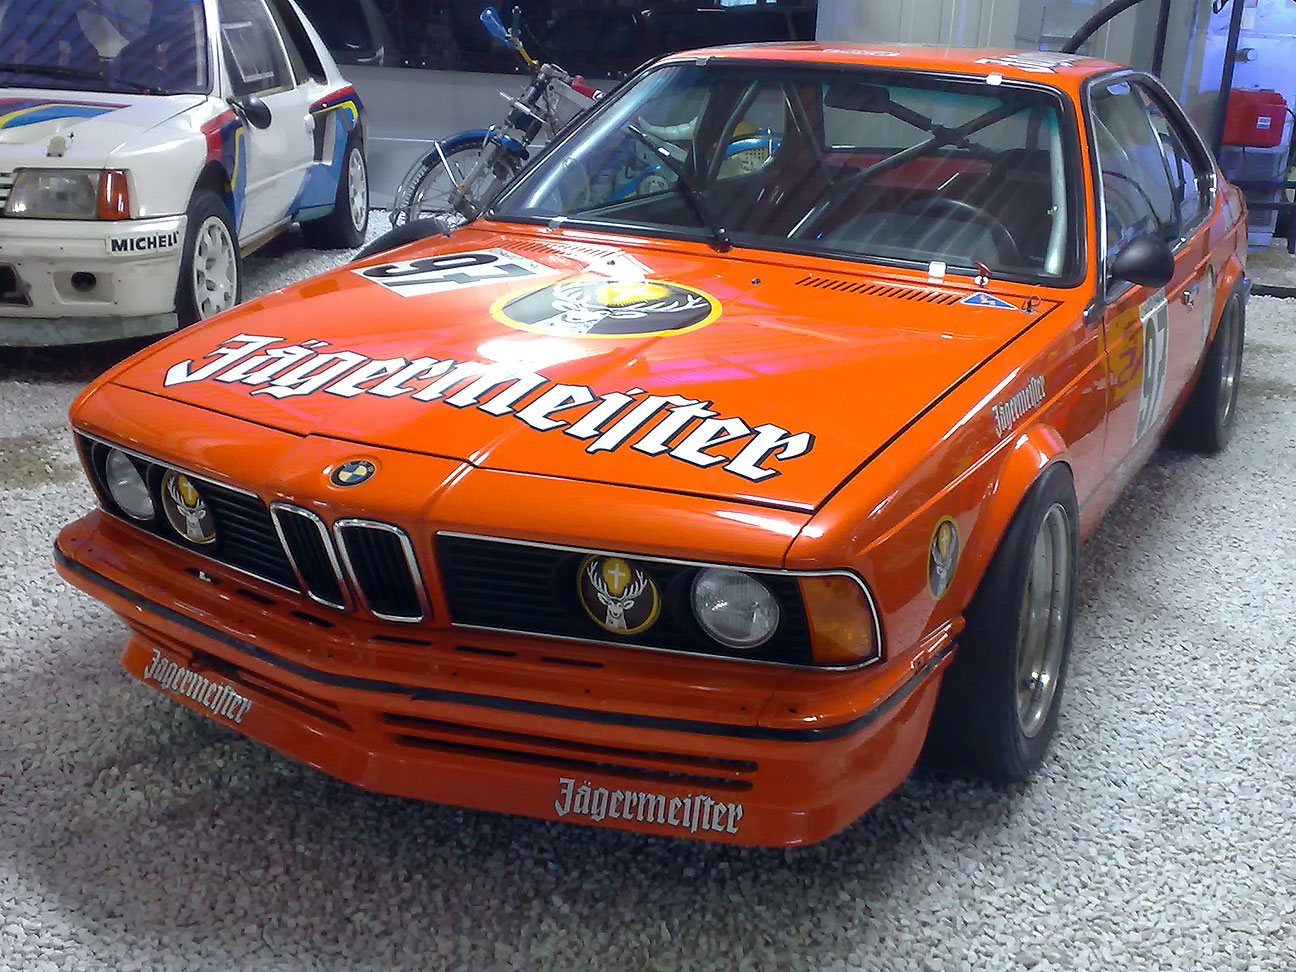 File:BMW 635 CSi Coupe.jpg